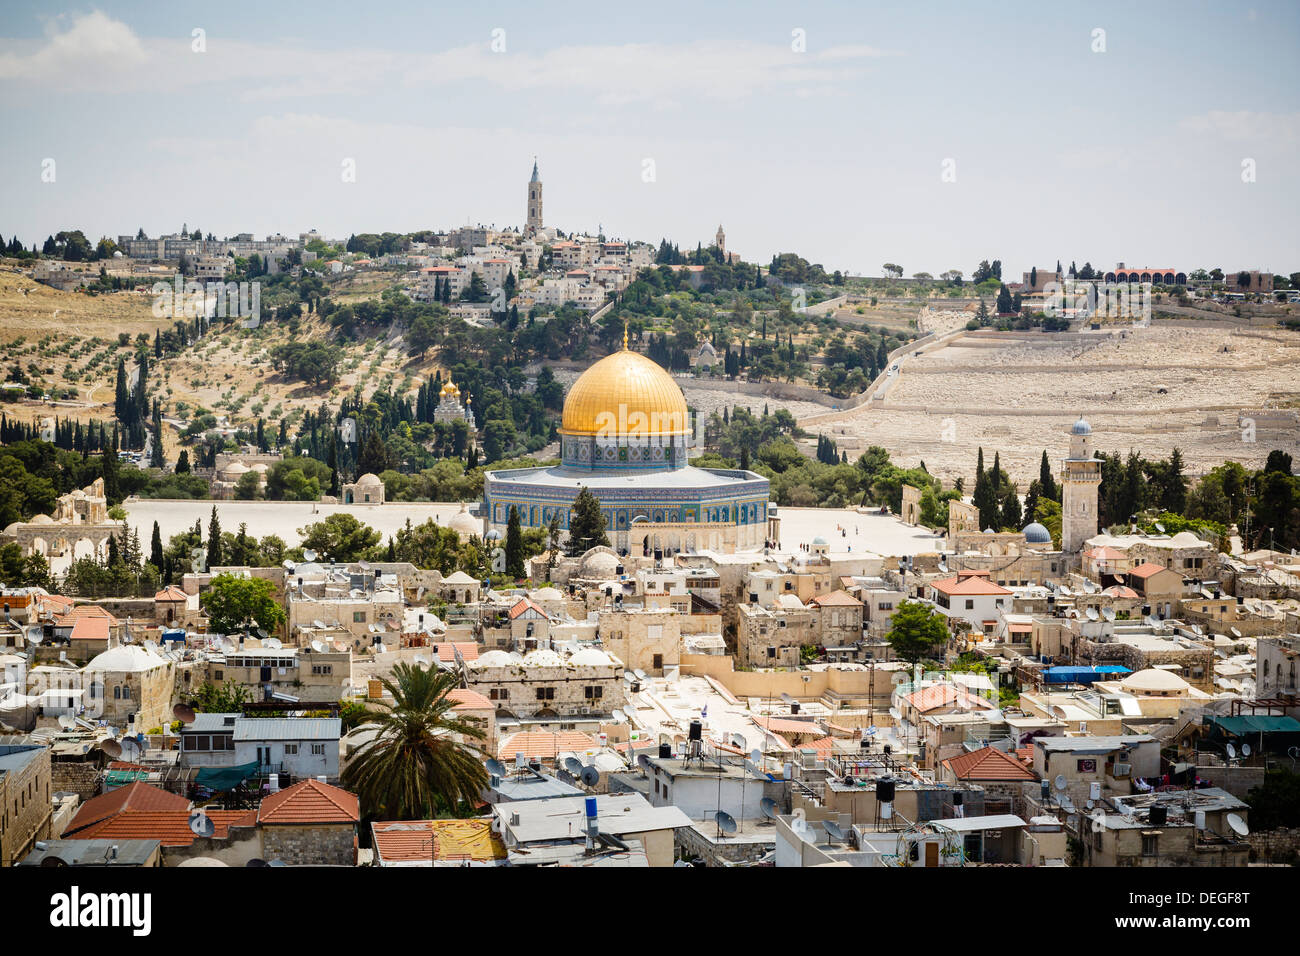 View over the Old City with the Dome of the Rock, UNESCO World Heritage Site, Jerusalem, Israel, Middle East - Stock Image